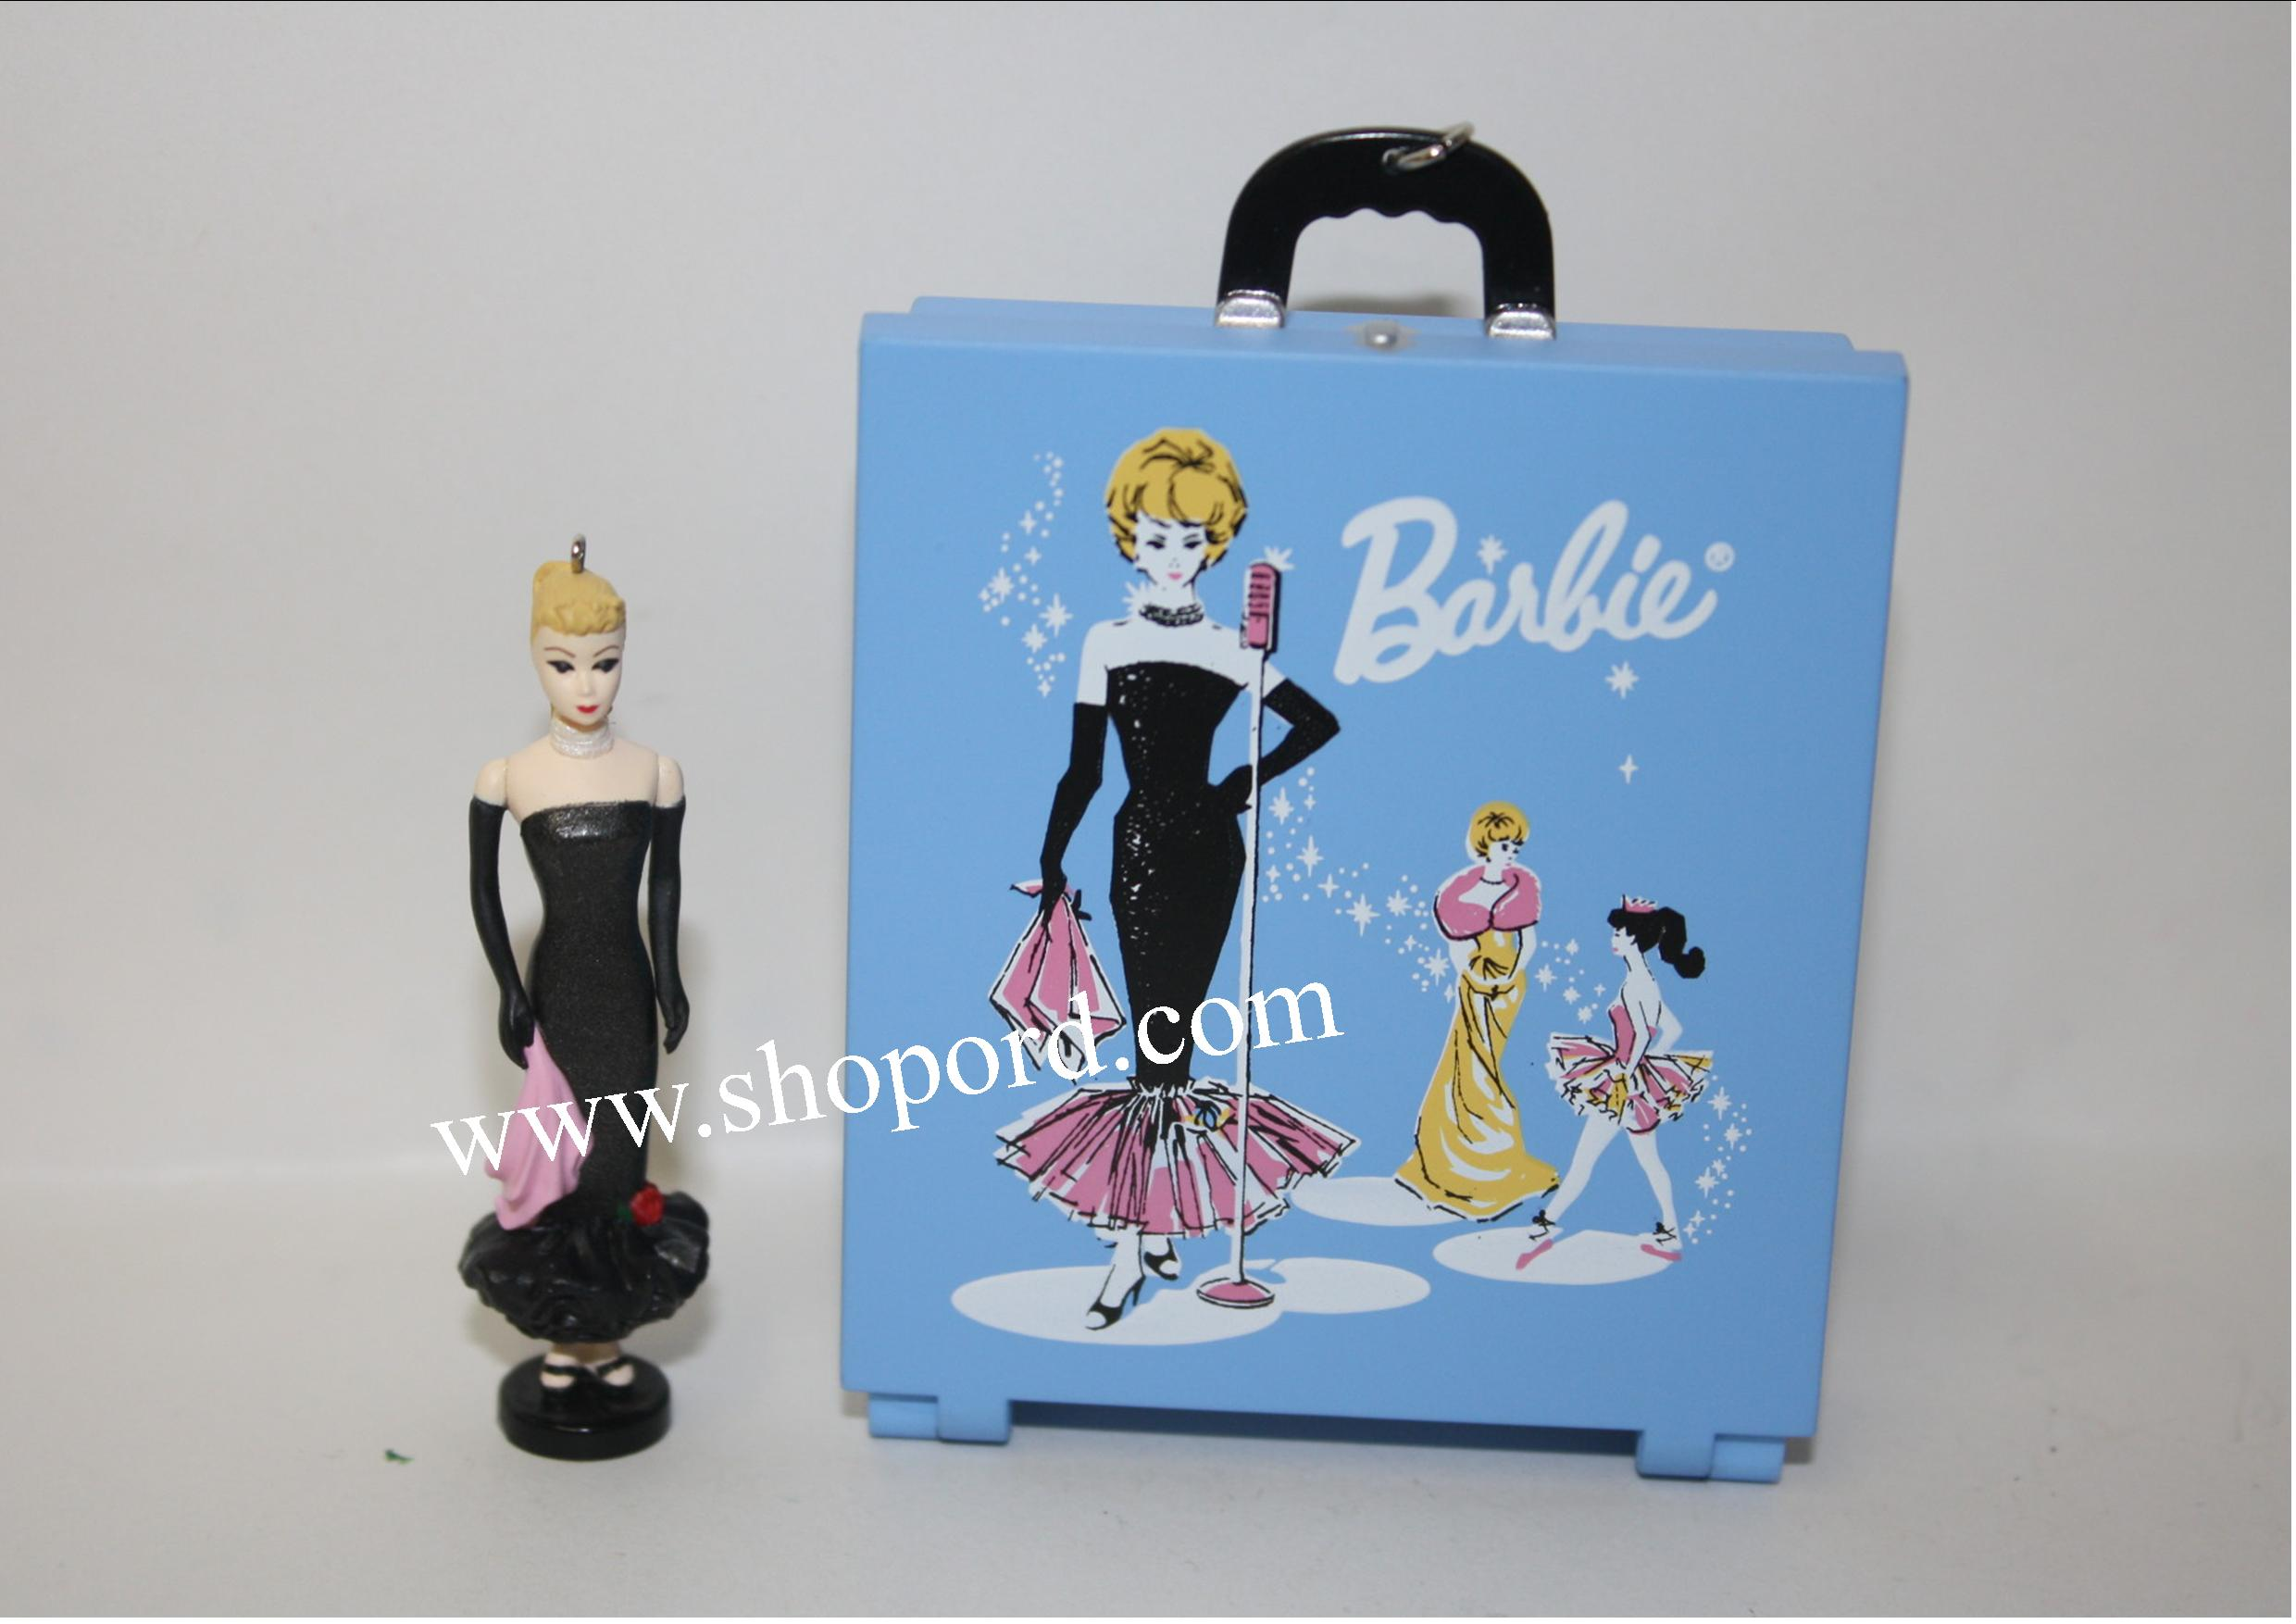 Hallmark 2001 Barbie Solo In The Spotlight Case and Barbie Miniature Ornament set of 2 QXM5312